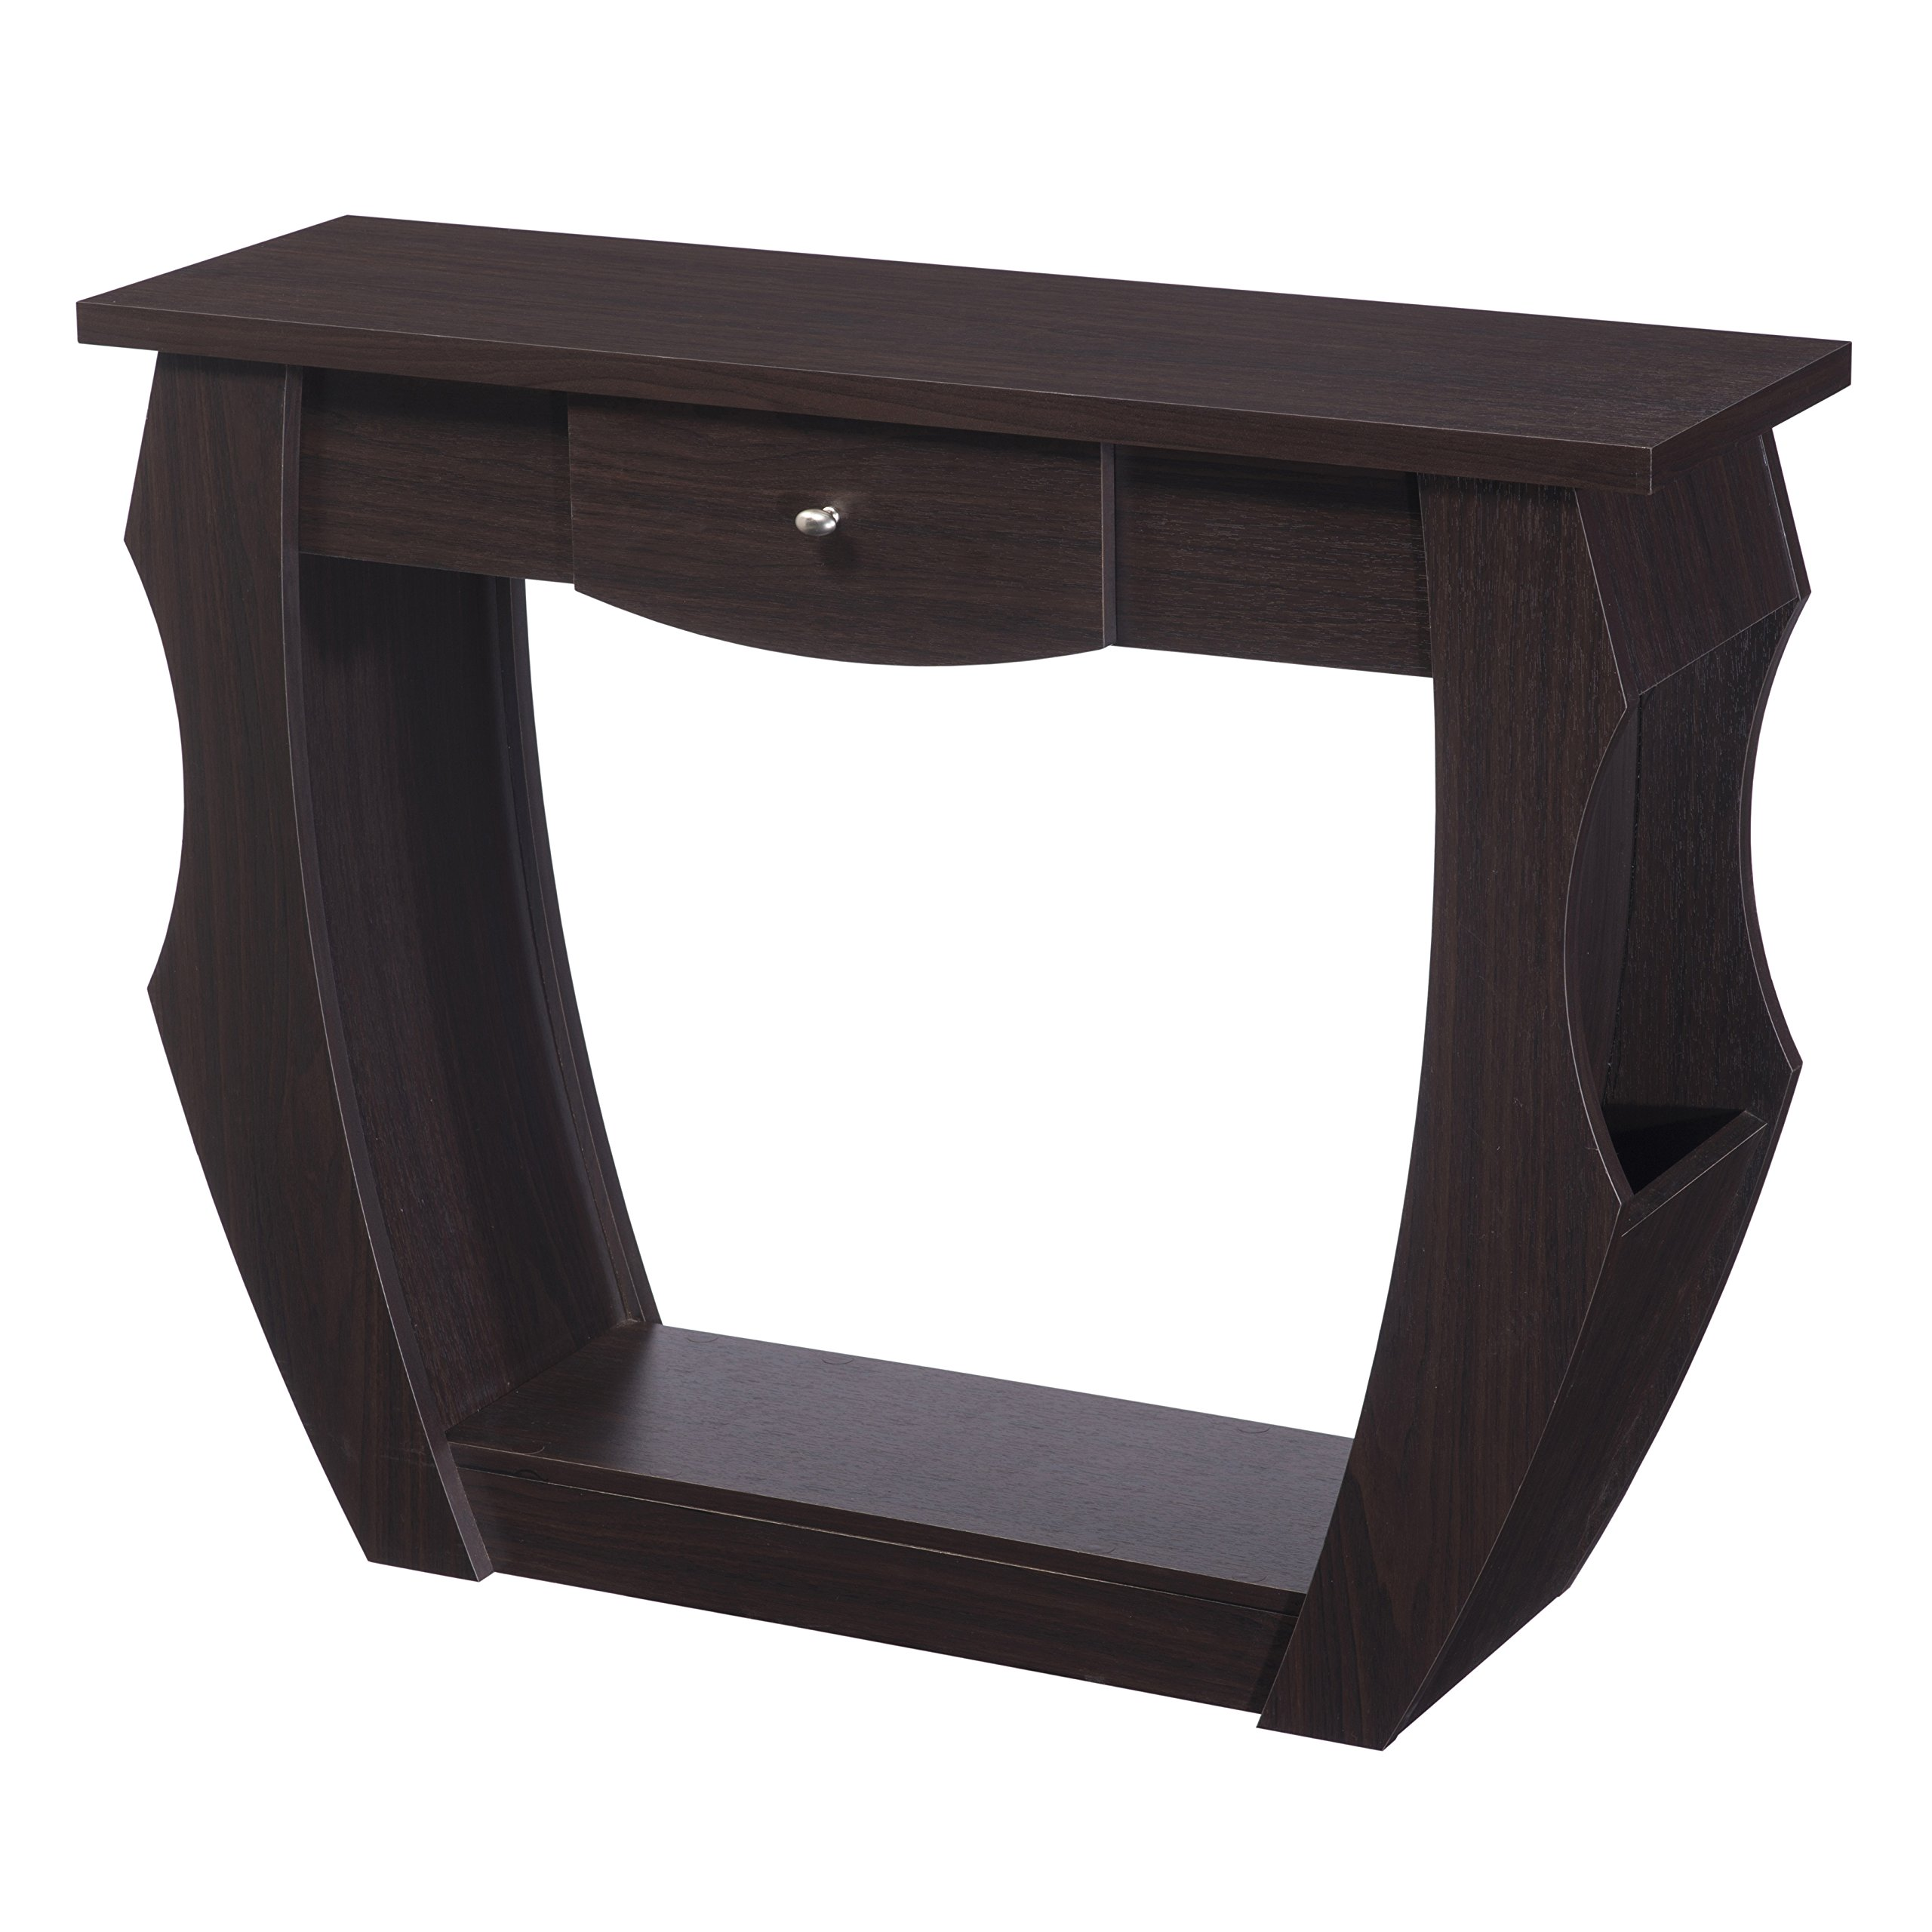 HOMES: Inside + Out ioHOMES Reeves Contemporary Console Table, Walnut